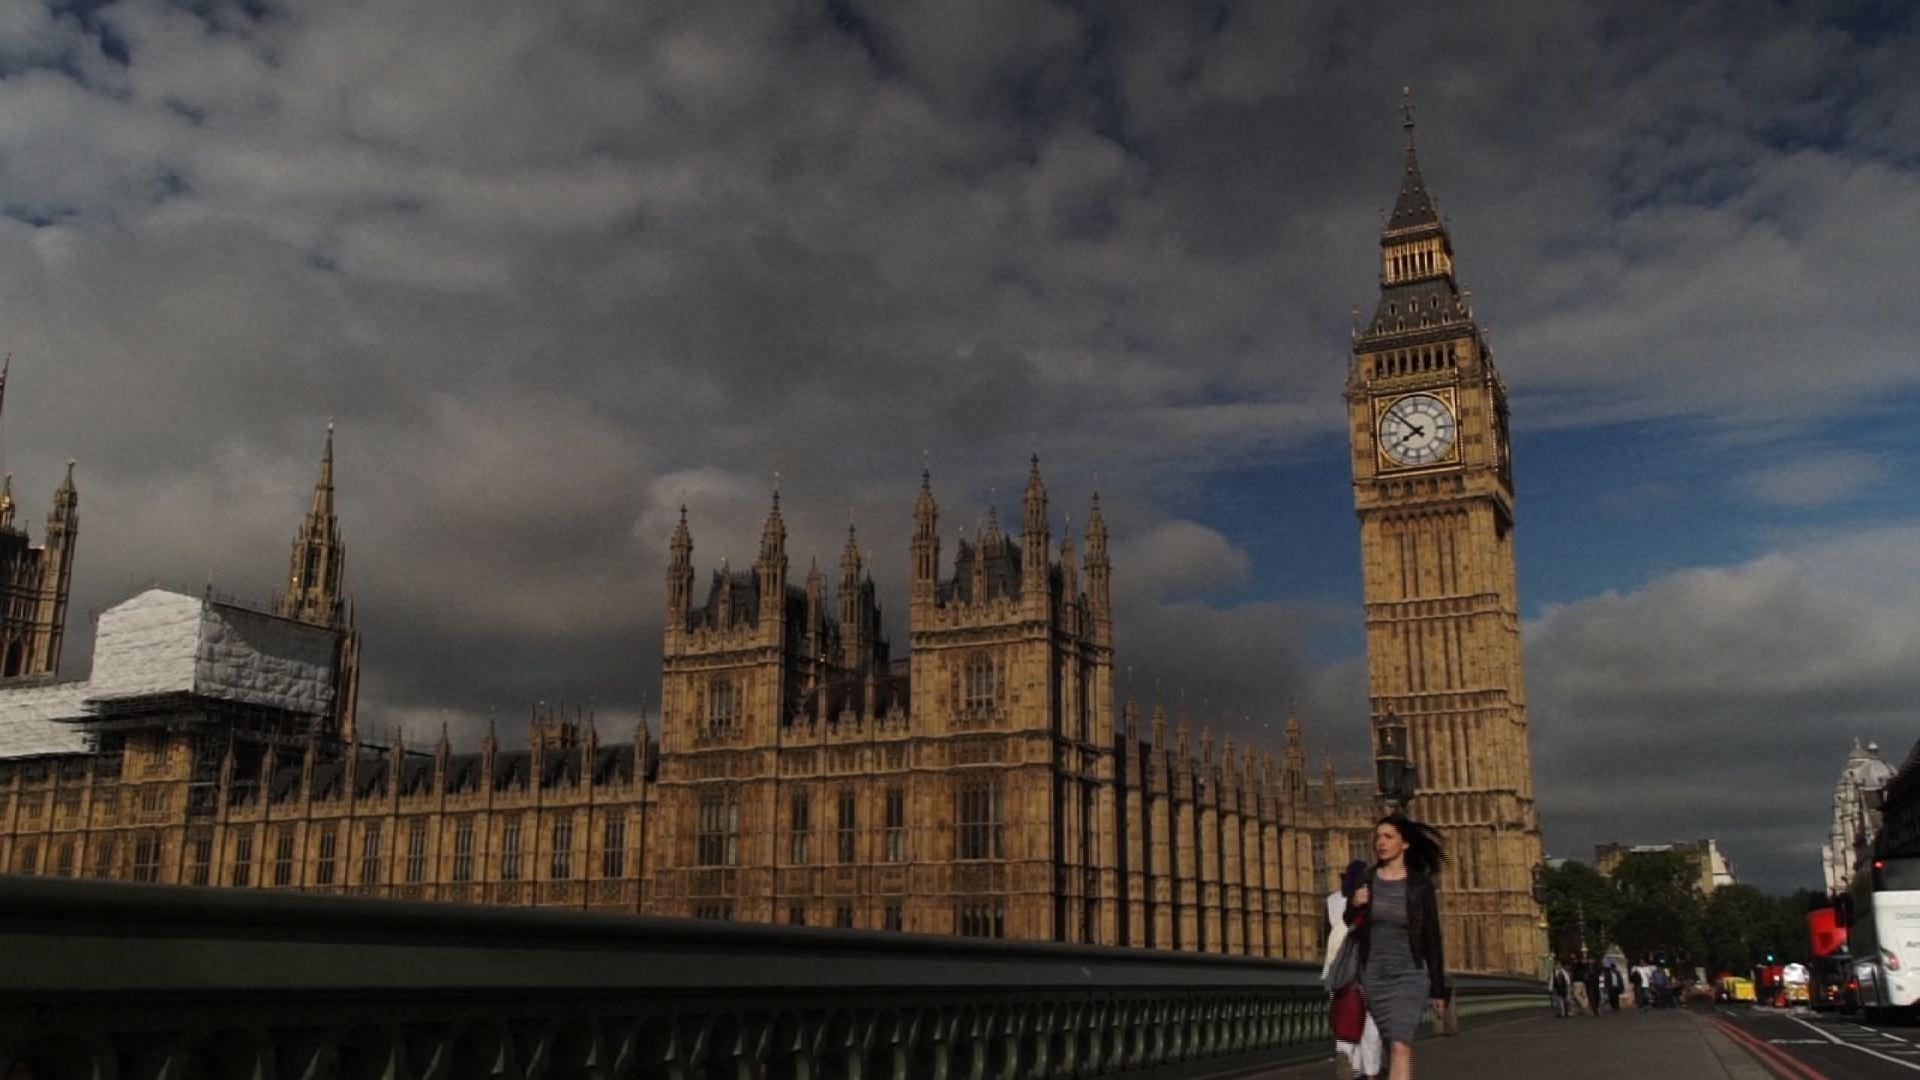 Uncertainty Looms in Europe After Brexit Vote